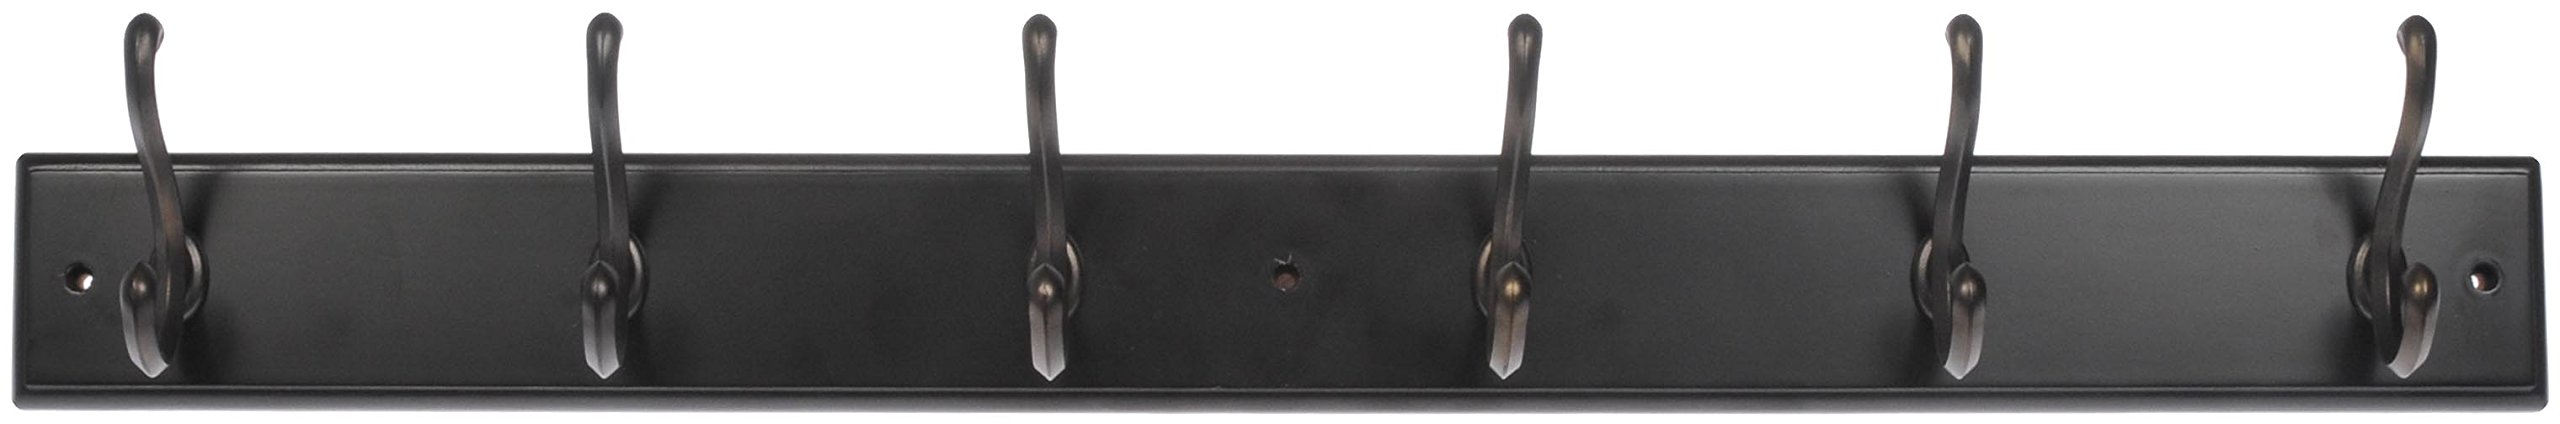 Dorman Hardware 4-1821 Hook Board with 6 Traditional Double Bronze Hooks, 27-Inch, Espresso Finish